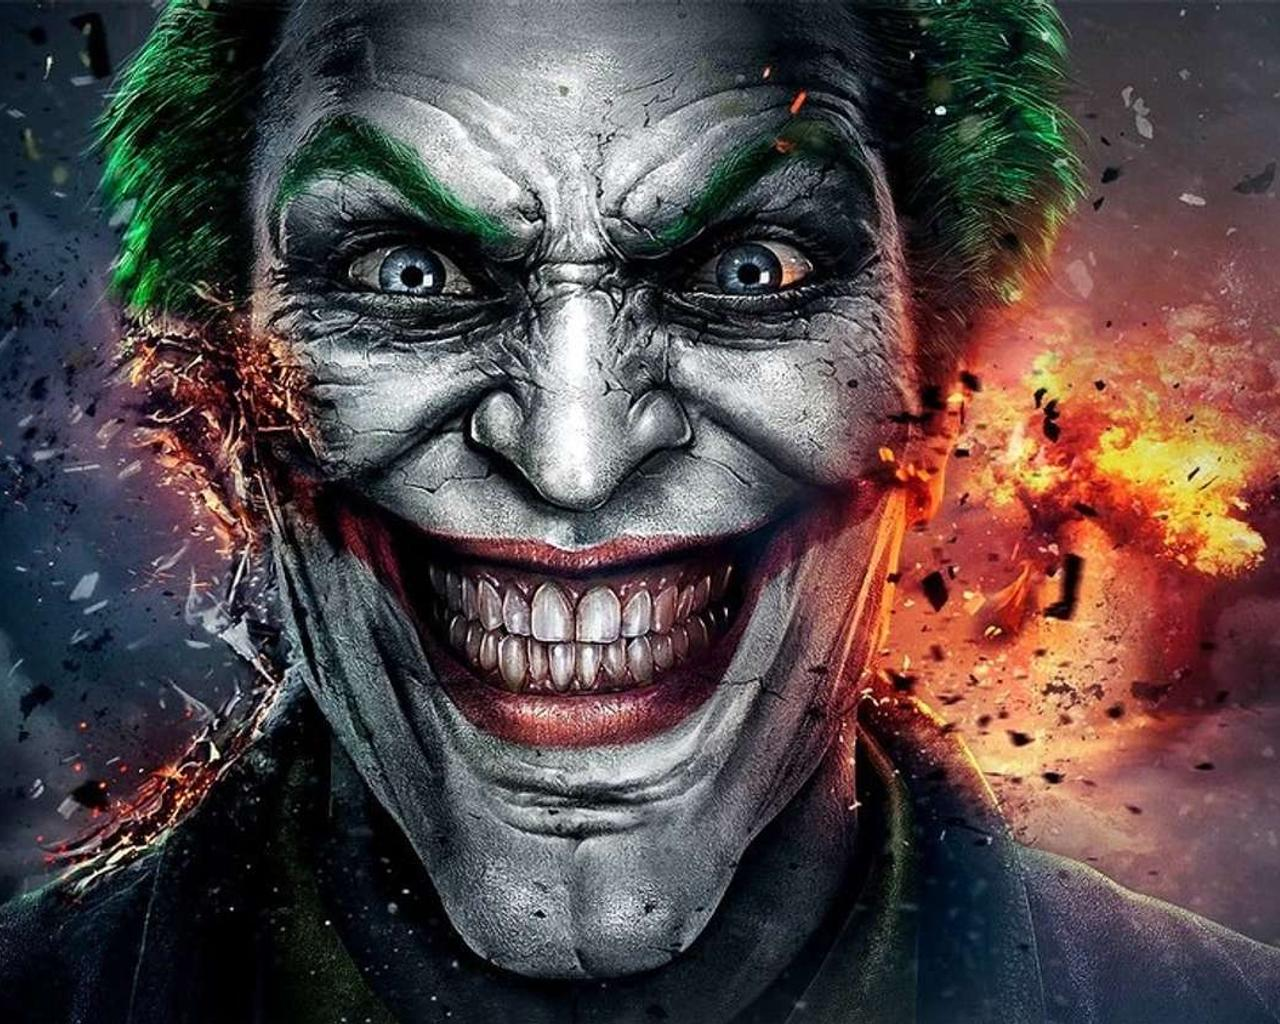 The Joker Film Almost Didn't Get Made—Because Of Toys